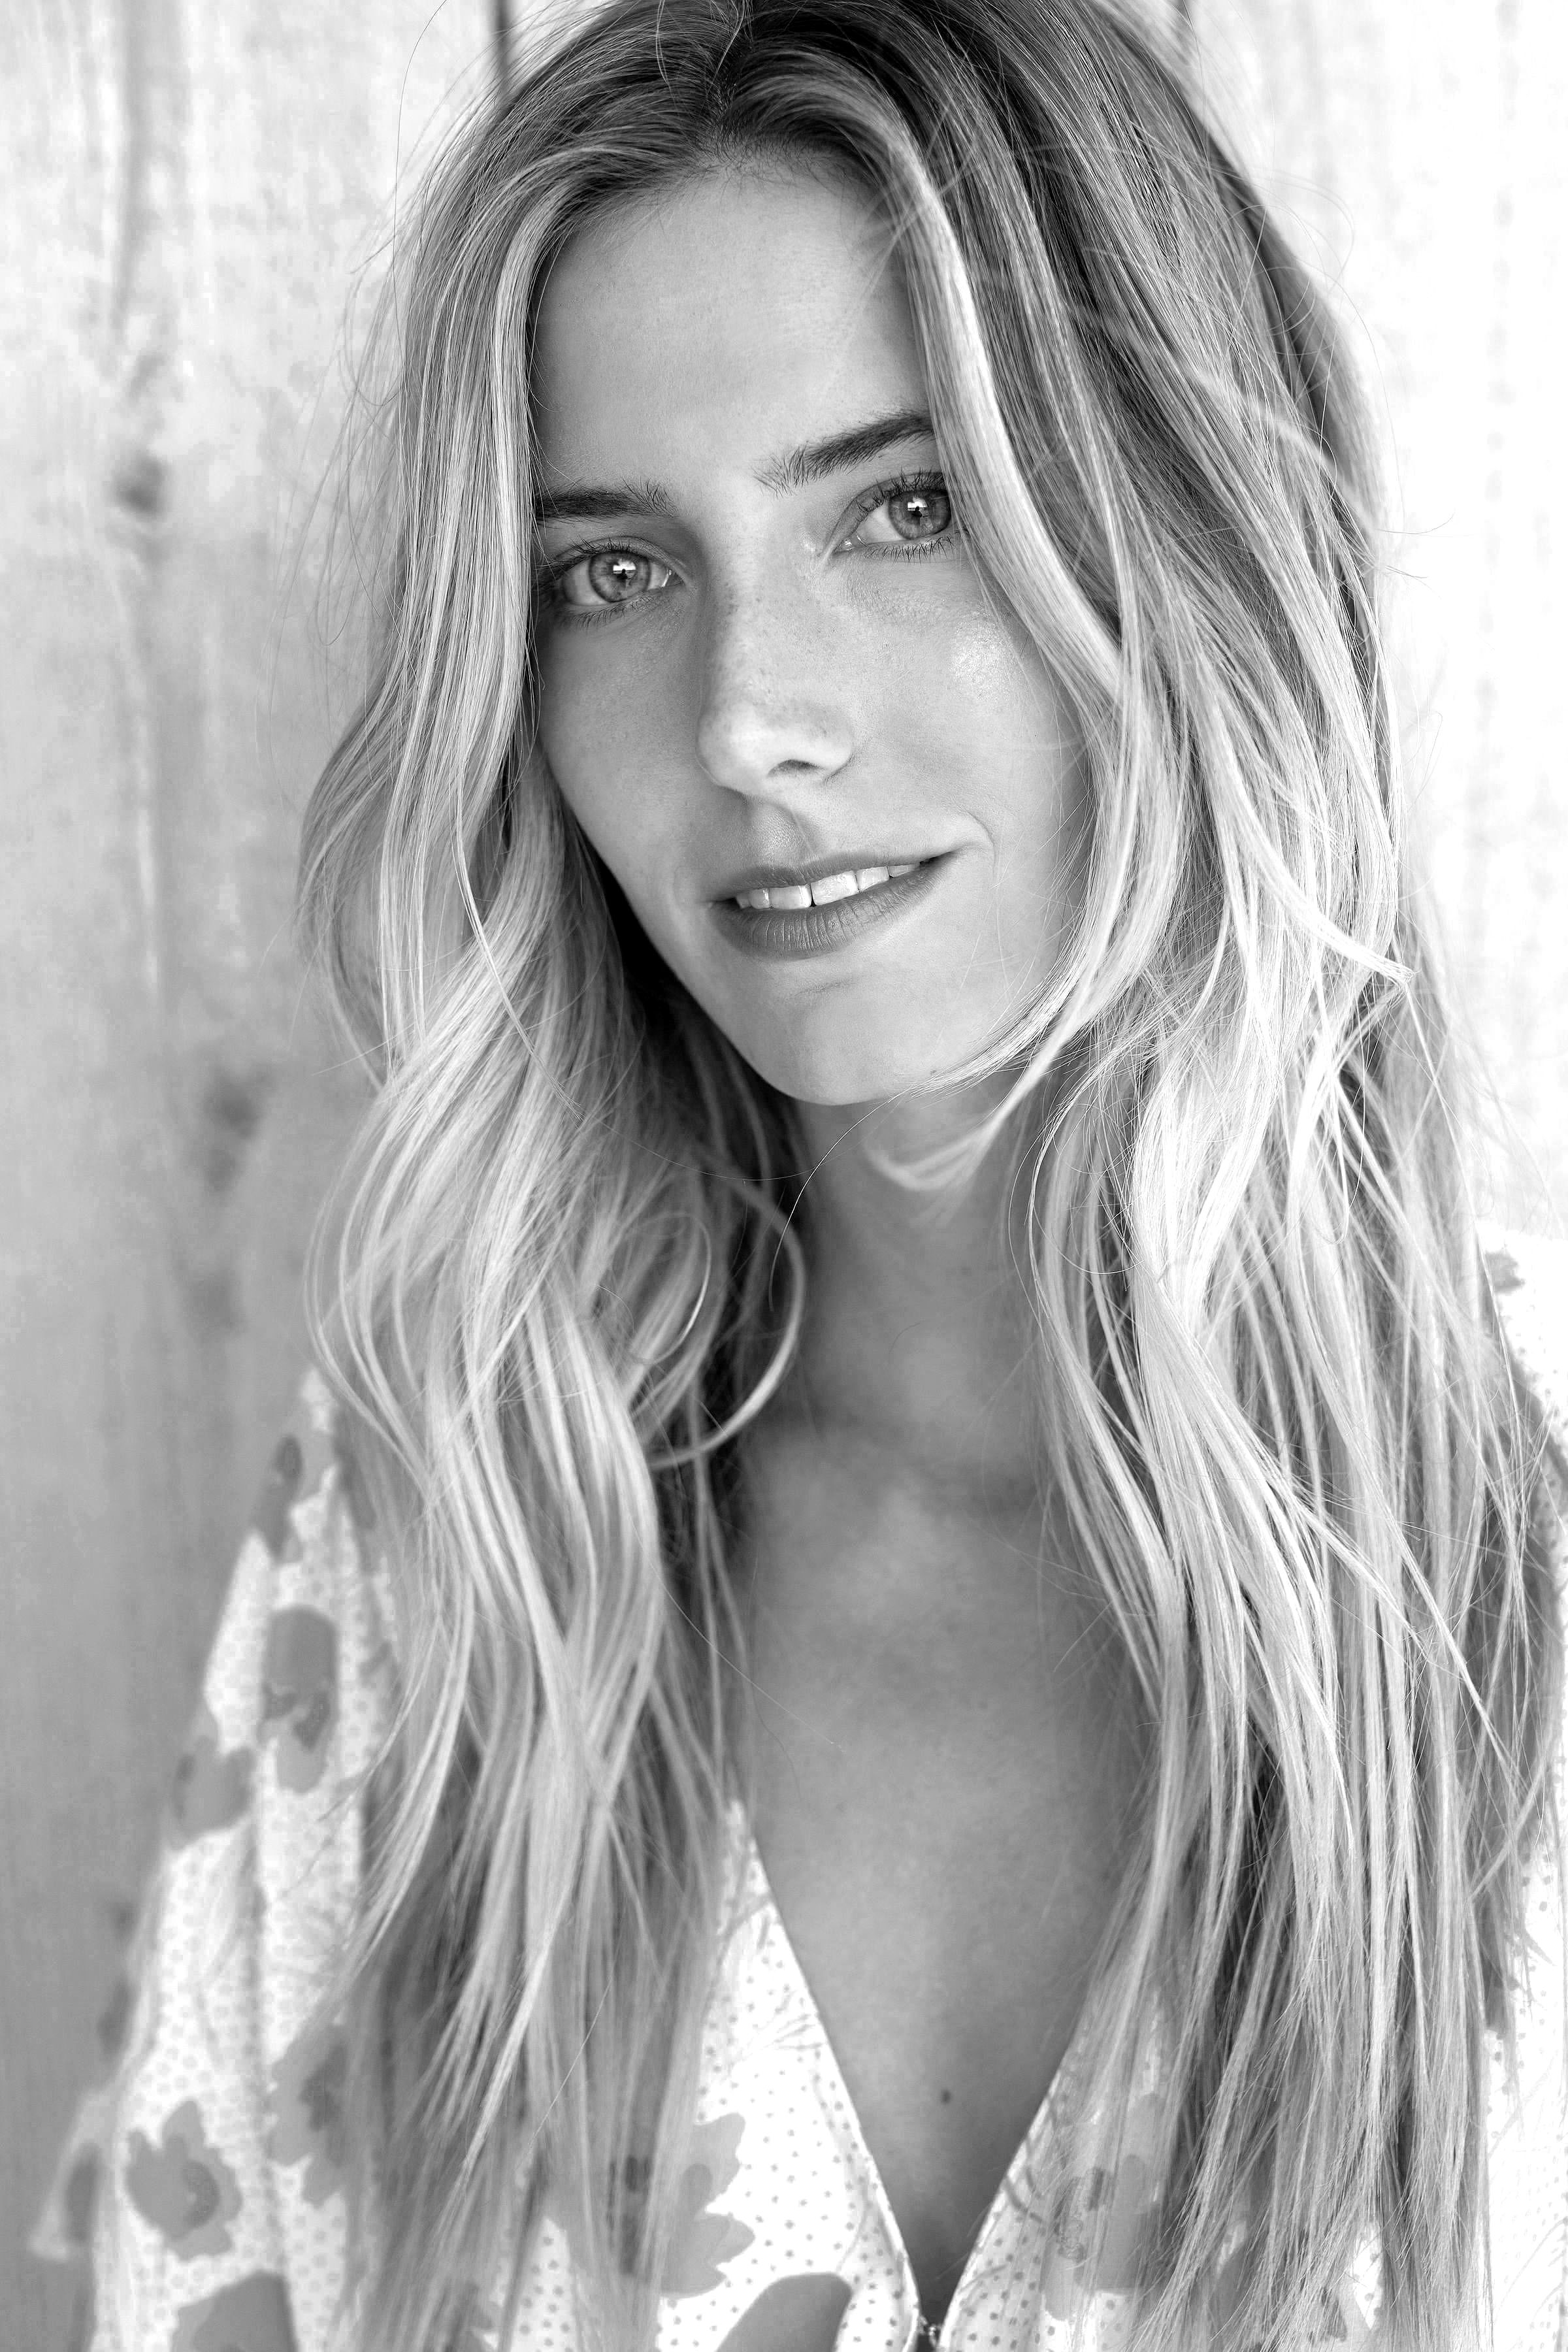 Taylor McKay - Taylor is from Vancouver, Canada and is now based out of Los Angeles. She began her career as an international model working in Tokyo, Paris, Milan, London, Cape Town, Hamburg, Munich, & New York. Some of her clients include Garnier, L'oreal, M.A.C, Aveda, Chanel, Valentino, Viktor & Rolf, Helmut Lang, Escada, Mikimoto Pearls, Cosmopolitan Magazine & Vogue Italia. Drawing inspiration from her experiences working around the world, Taylor is passionate about storytelling and continues to work as a model as well as an actress in film and television (Saving Hope, Murdoch Mysteries, and Dead Rivalry).